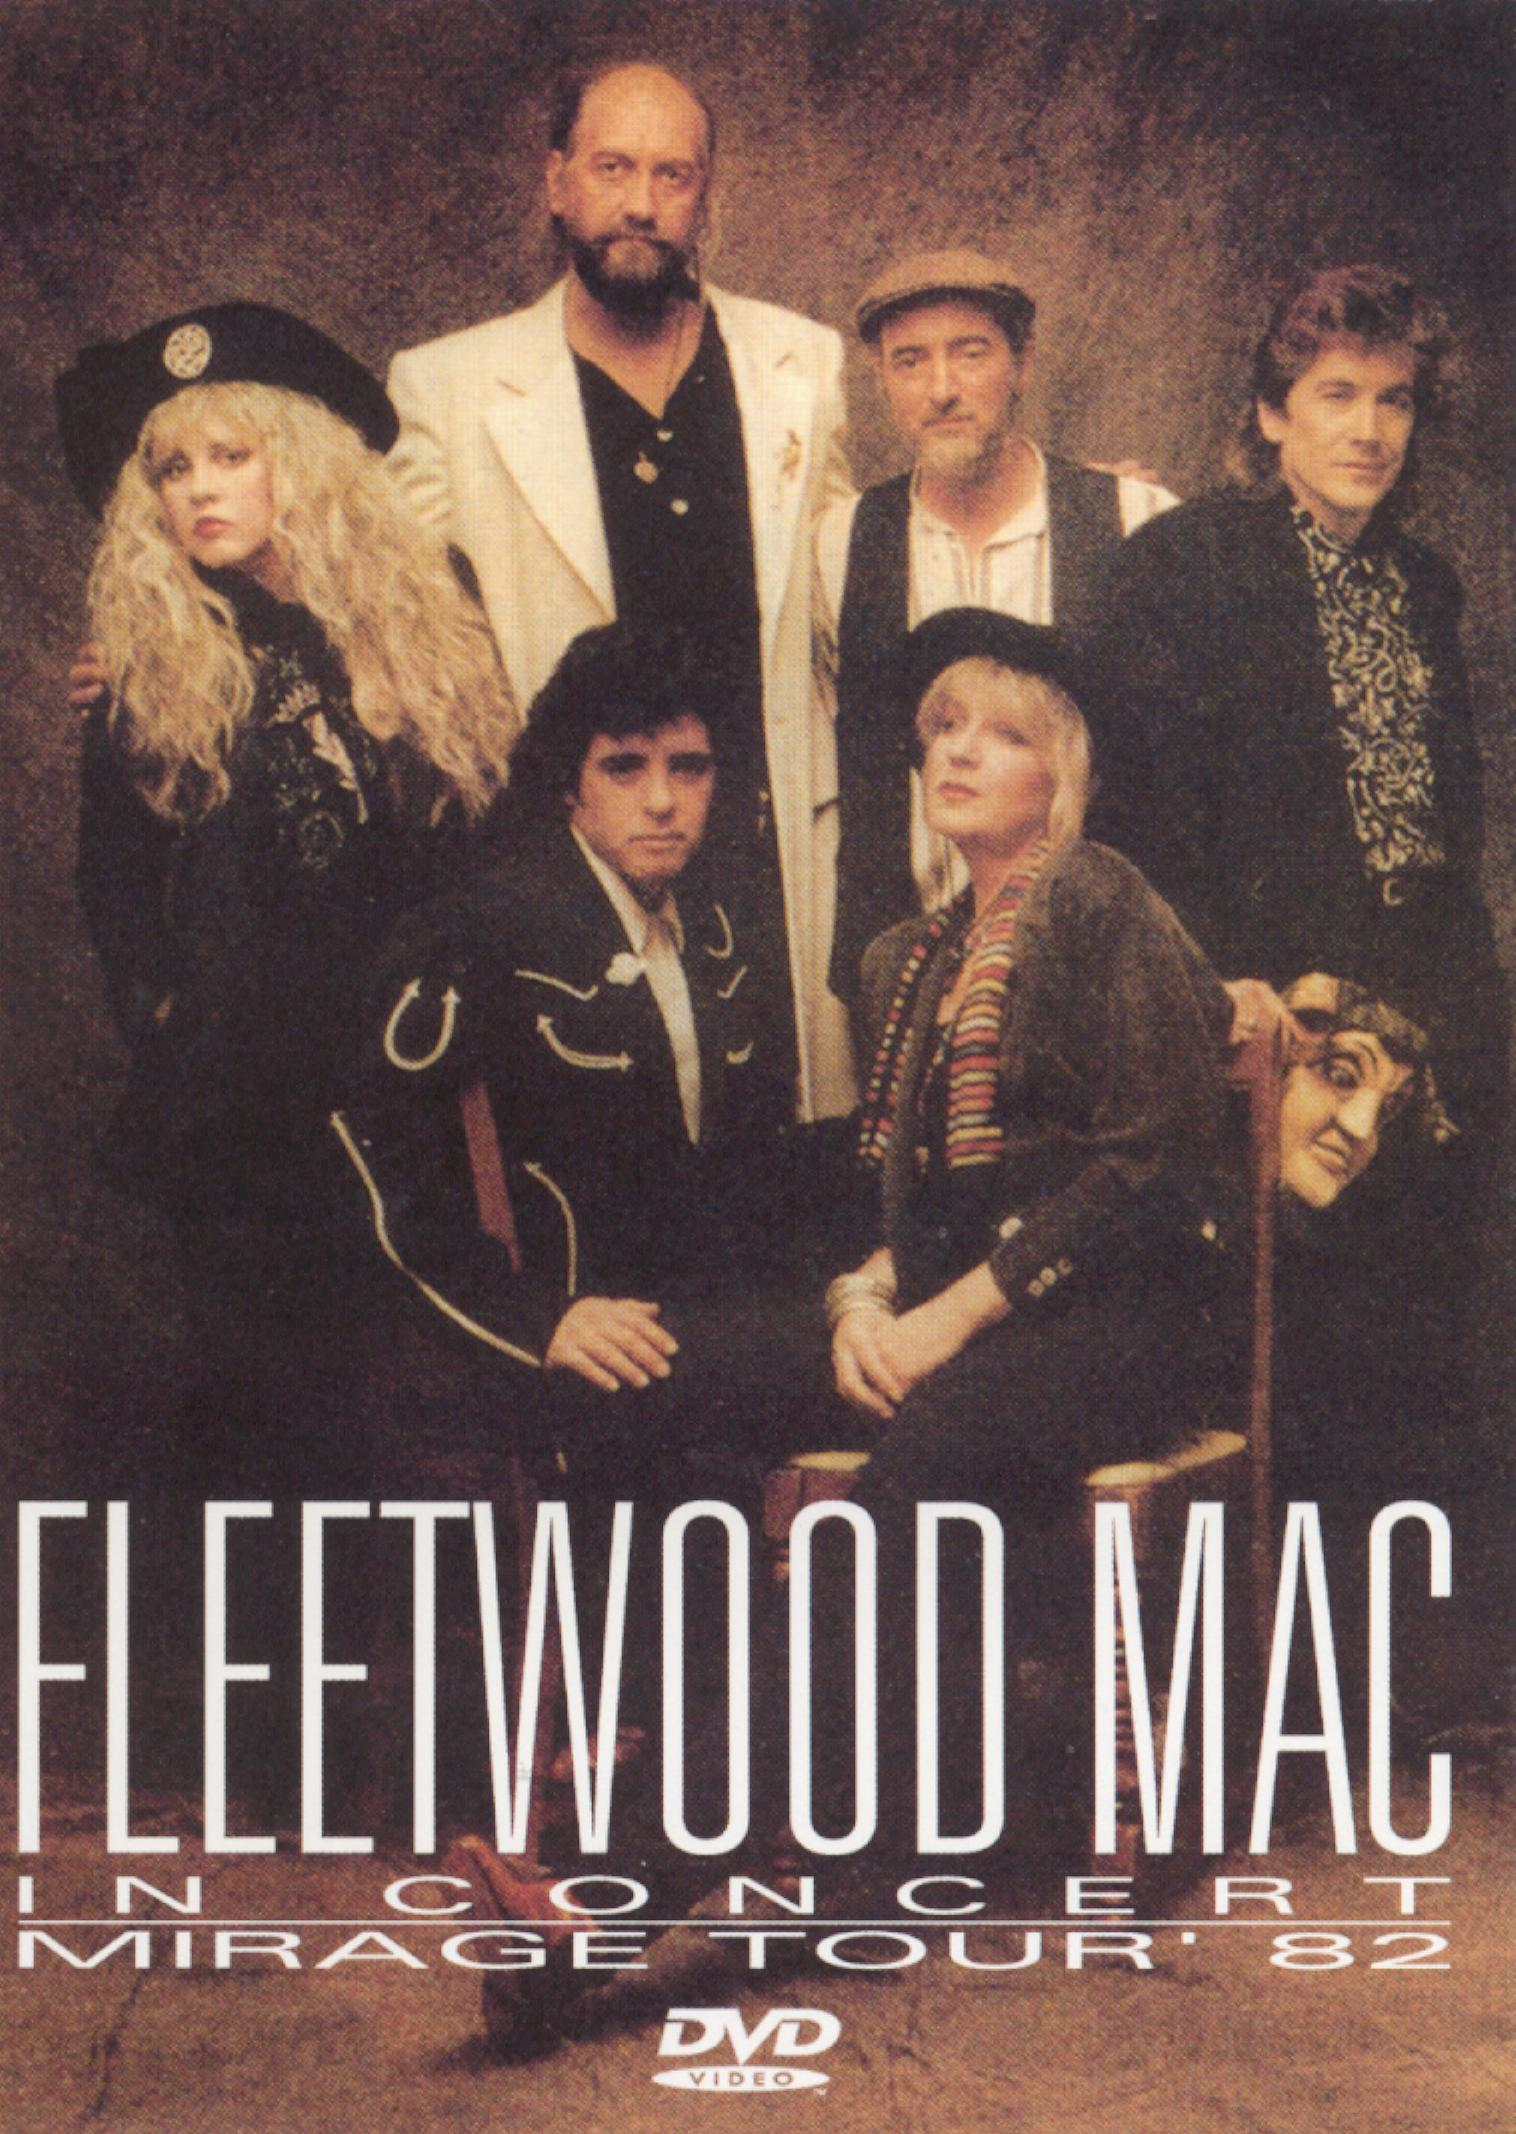 Fleetwood Mac: In Concert - Mirage Tour '82